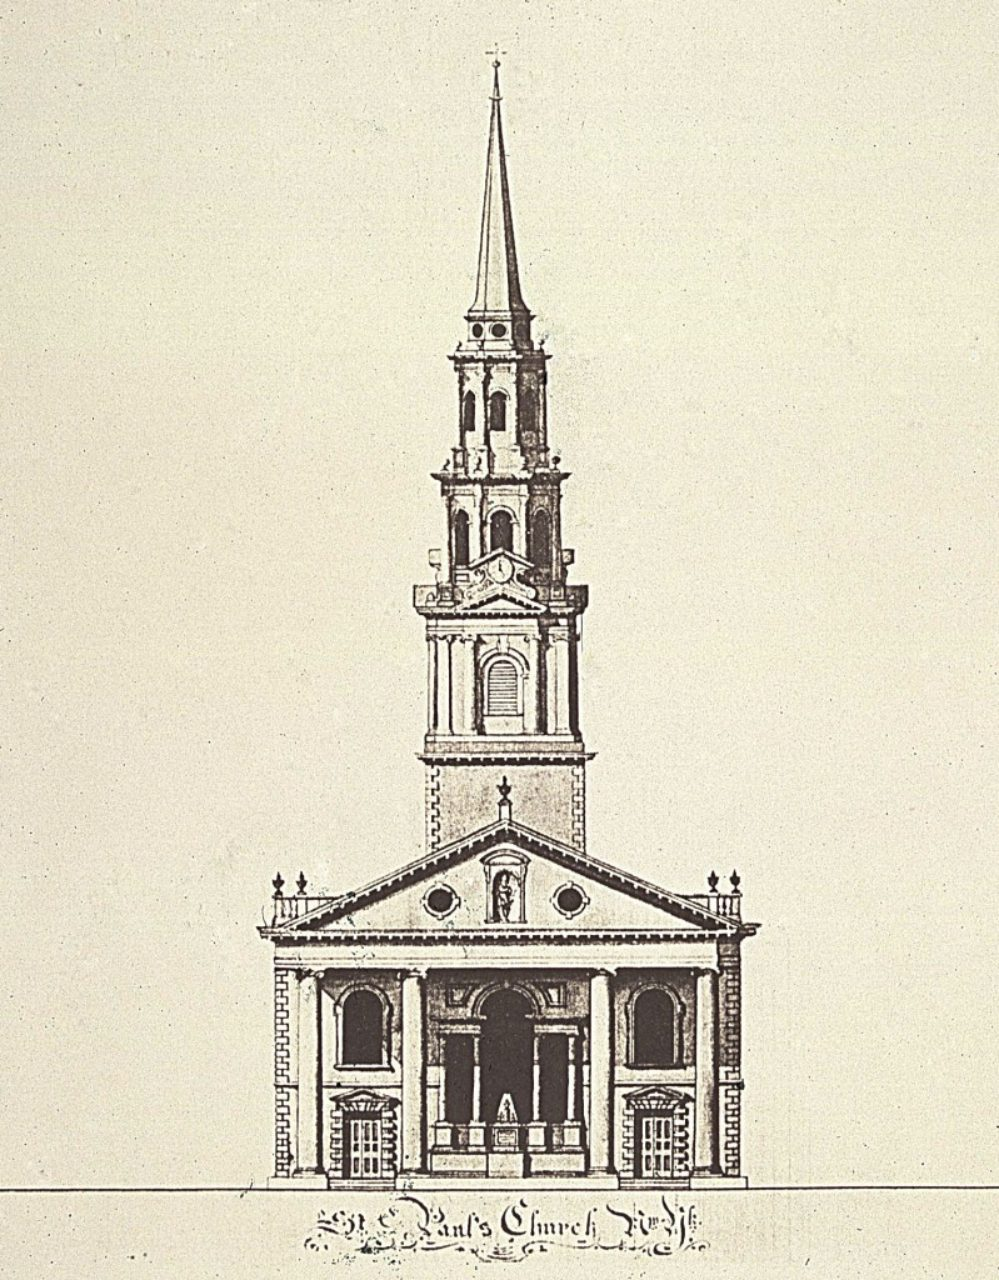 St. Paul's Chapel, Robert Mills: ink and wash on paper